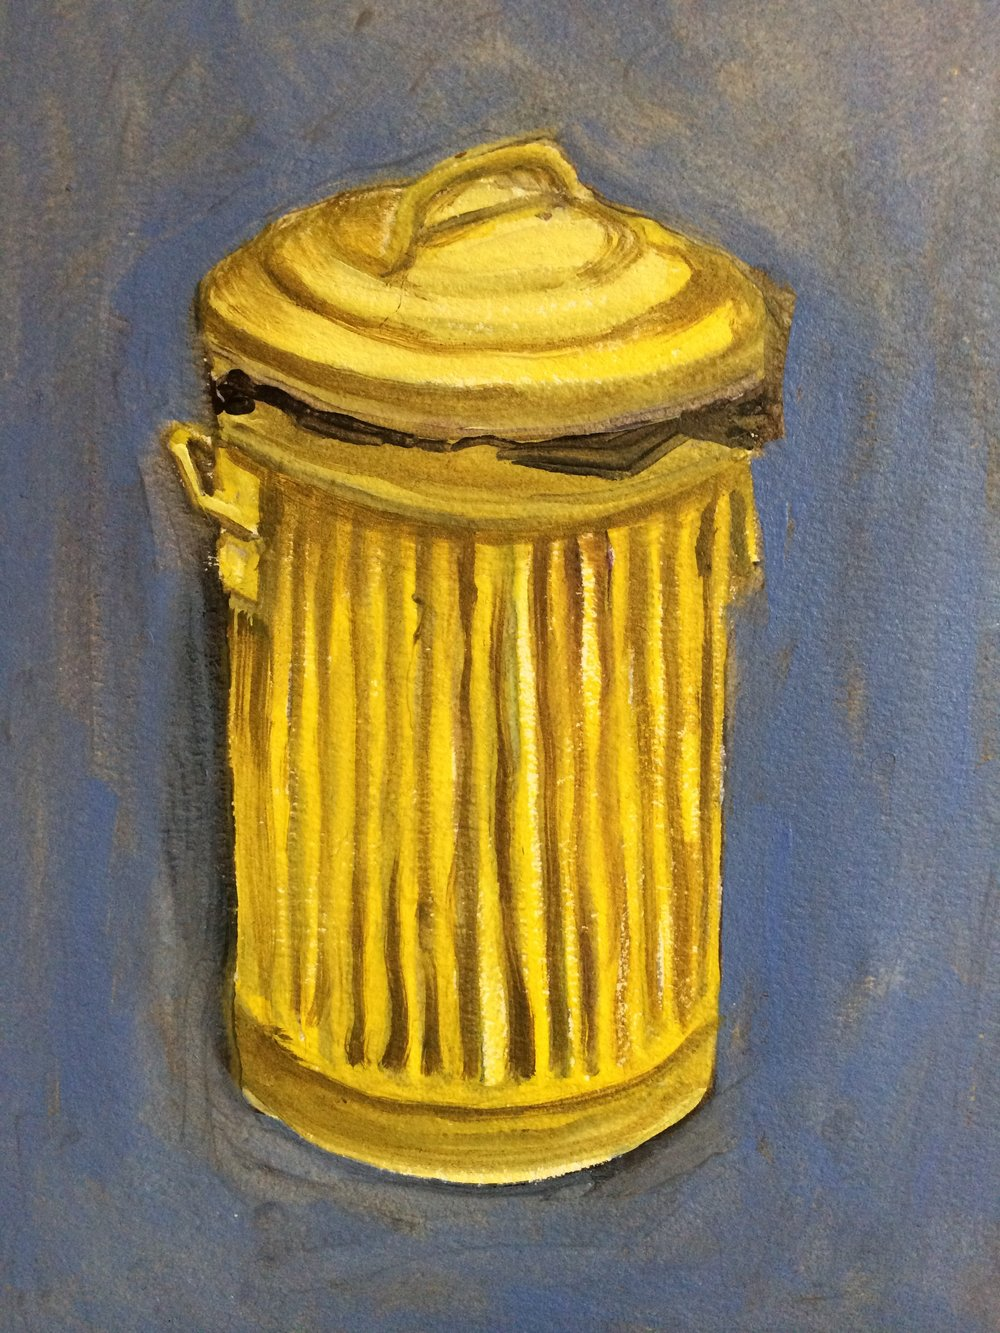 Oh Bollox the bin needs to be emptied again  23 x 15.5cms (oil on paper)  Baby's age - 4 months  Painting time - 30 minutes  Completed - 2/3/2017